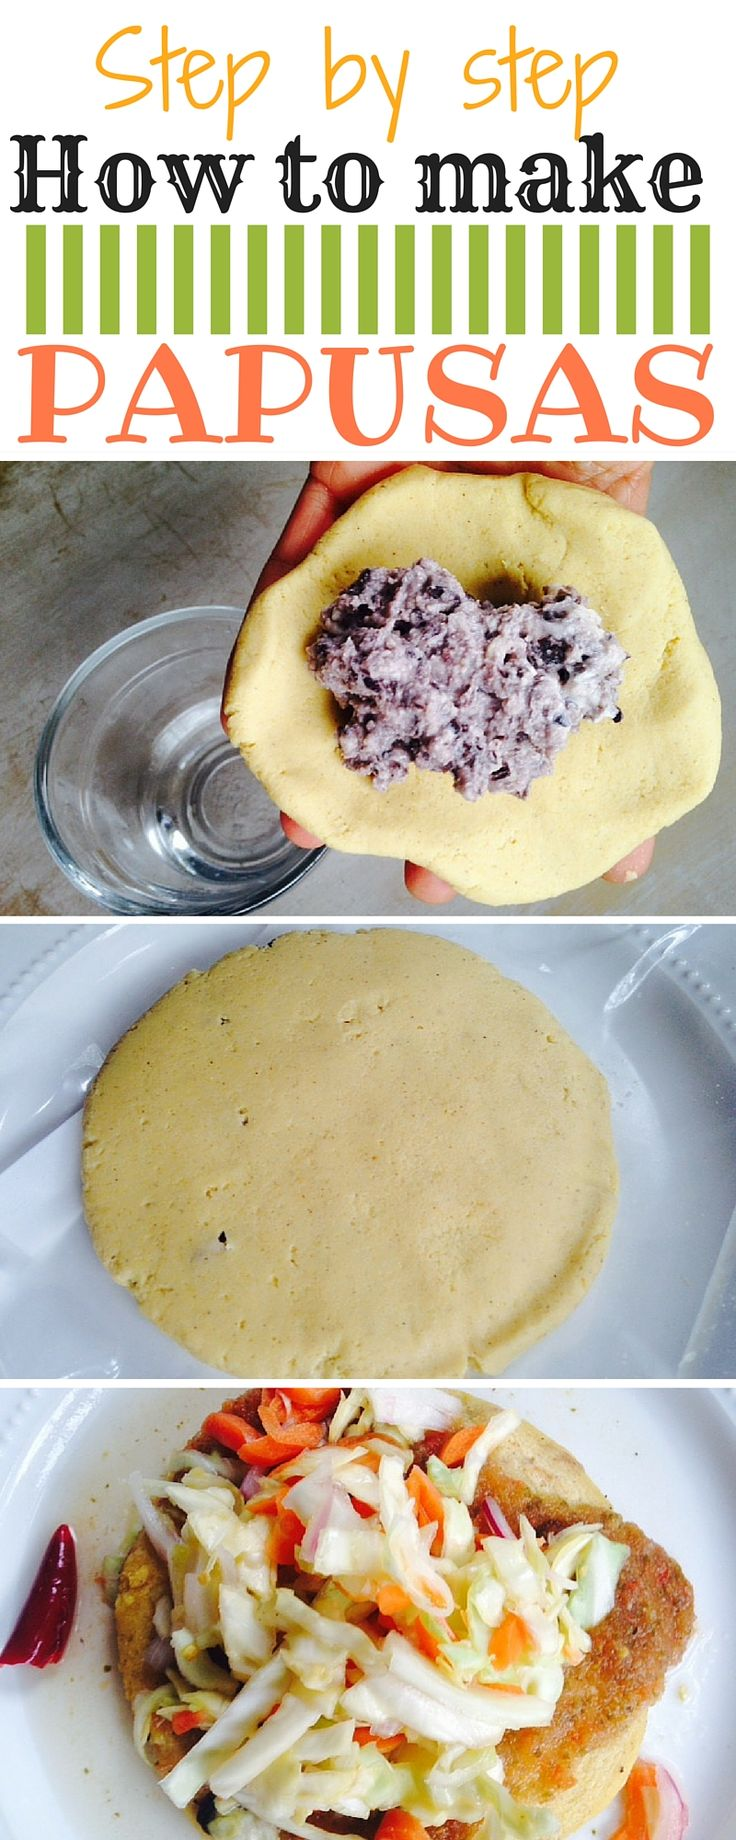 Today I am going to share with you a delicious family recipe that might be a little different from the traditional pupusa , but still very much an El Salvadorian pupusa. I will also throw in some helpful tips and tricks on how to make your pupusa making a little easier. It's all about the Masa. If you have a good consistency, and perfect the art, it will be smooth sailing. http://www.thehomemadelife.com/papusas-a-salvadorian-delight/